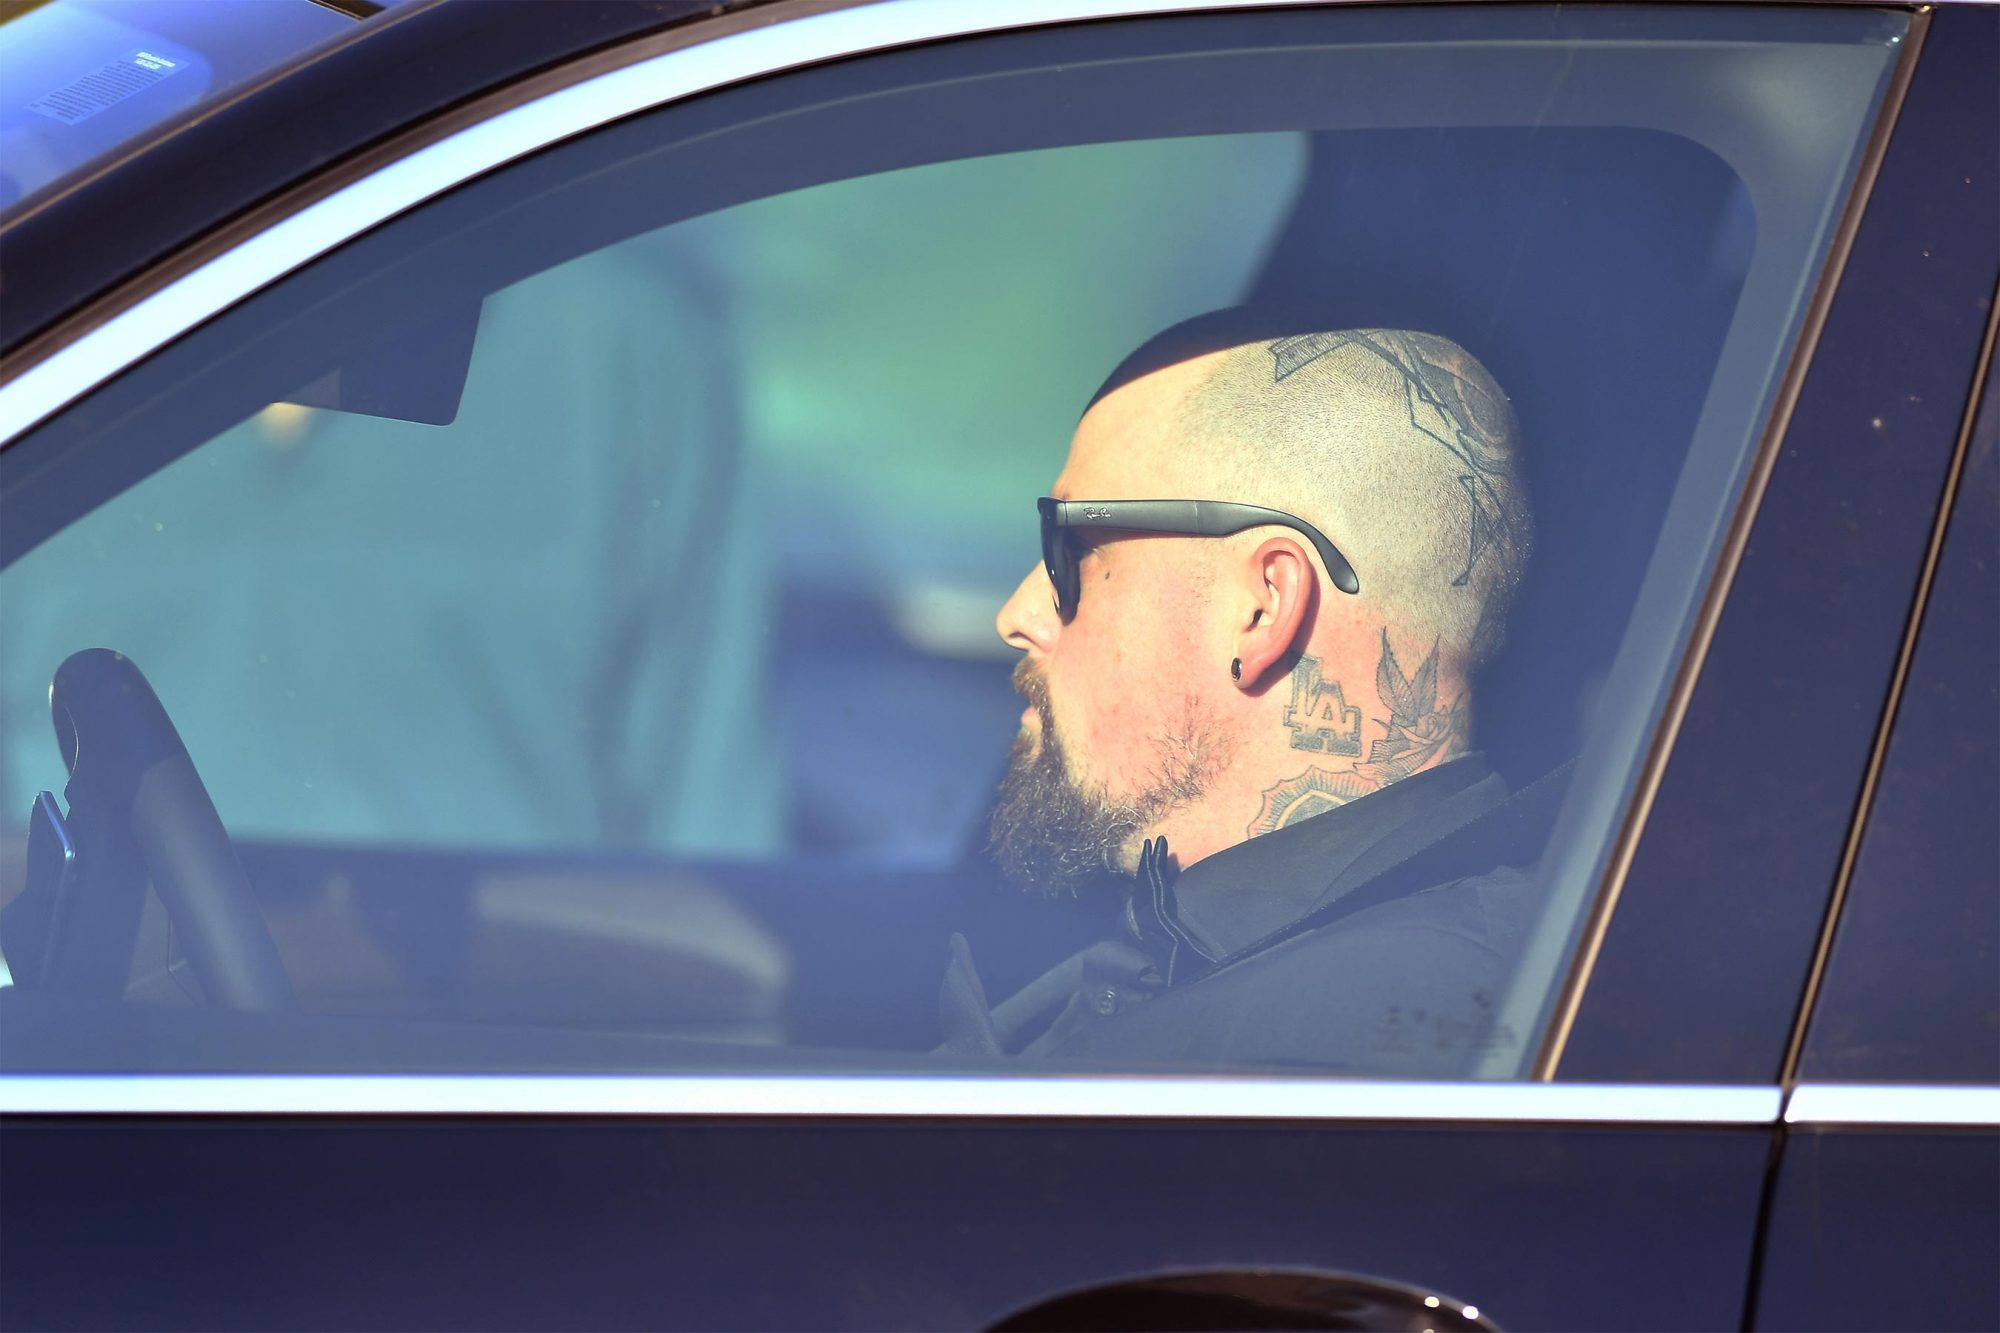 Benji Madden arriving at Gwyneth Paltrow wedding in the hamptons